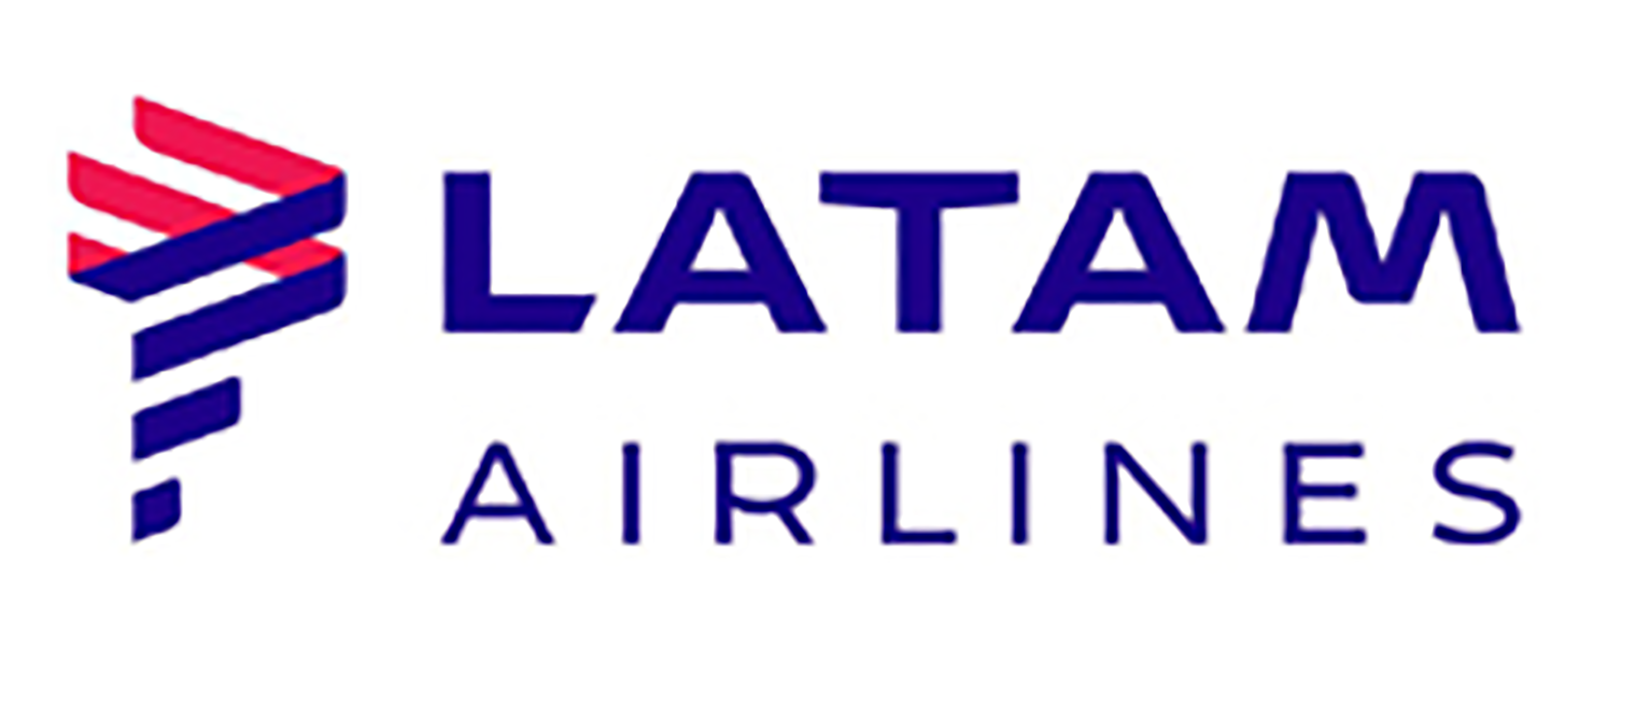 Trustee LATAM Airlines